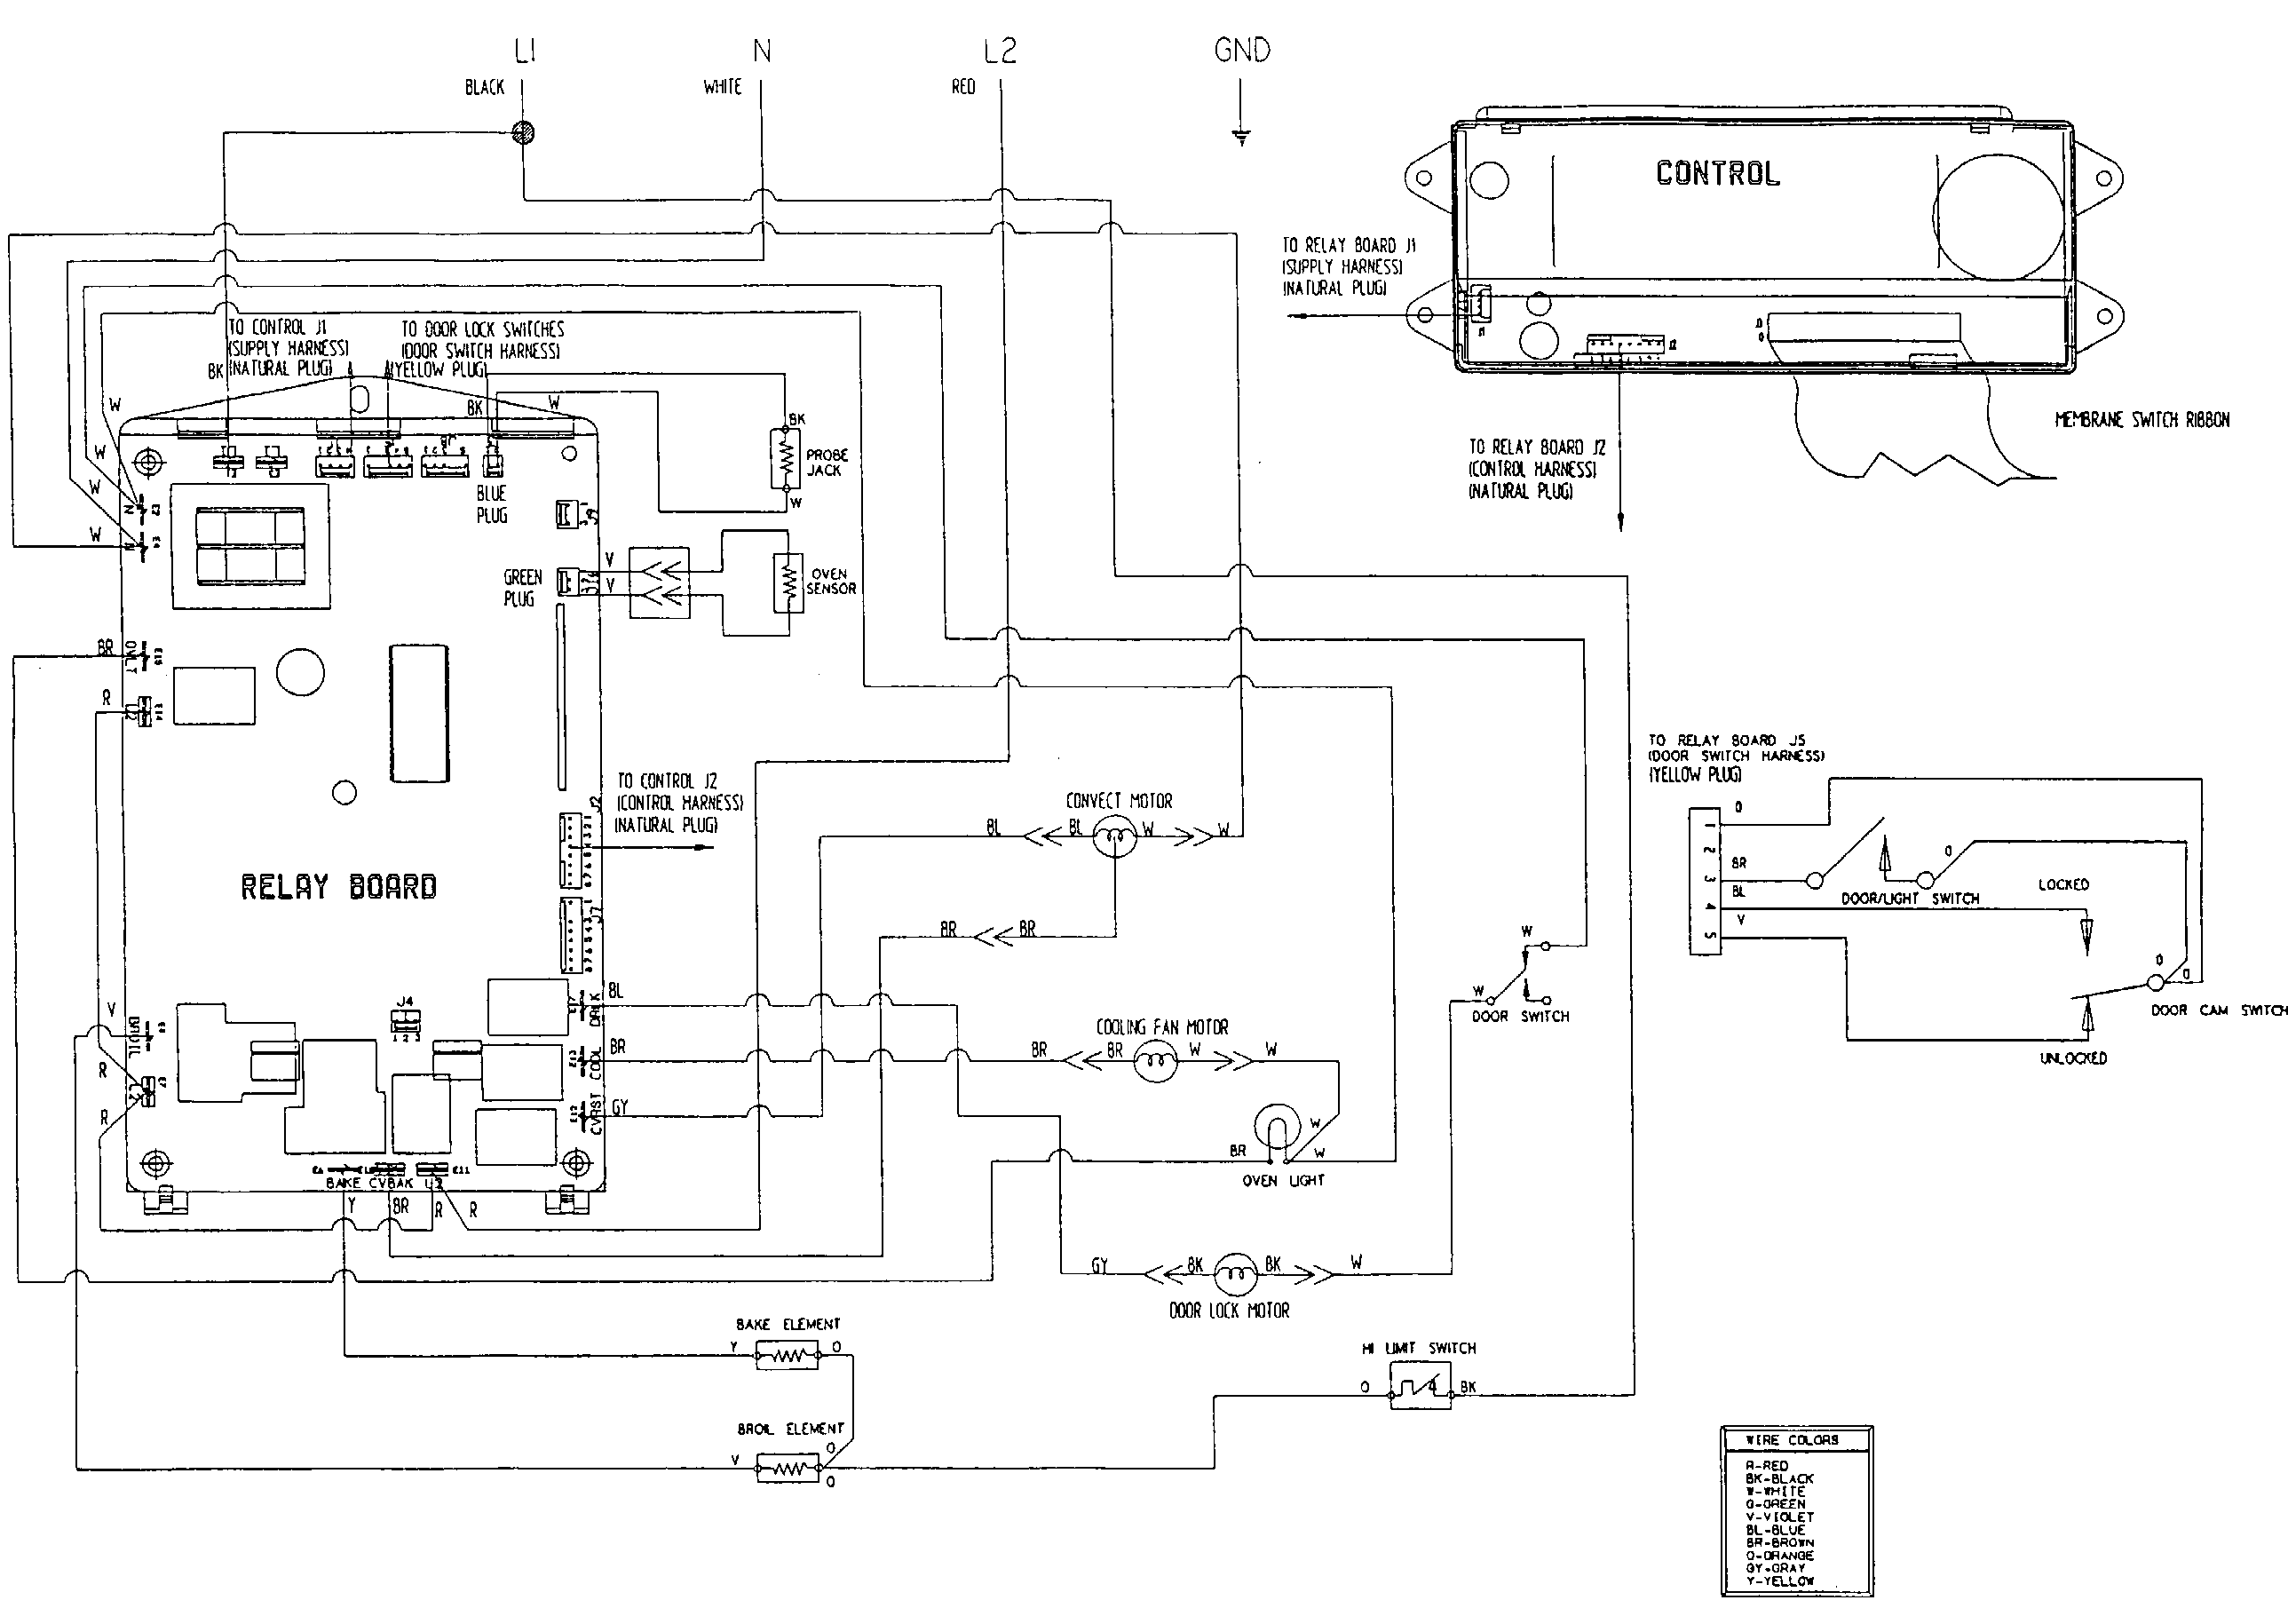 jenn-air w30400bc electric wall oven timer - stove clocks ... jenn air double wall oven wiring diagram #7